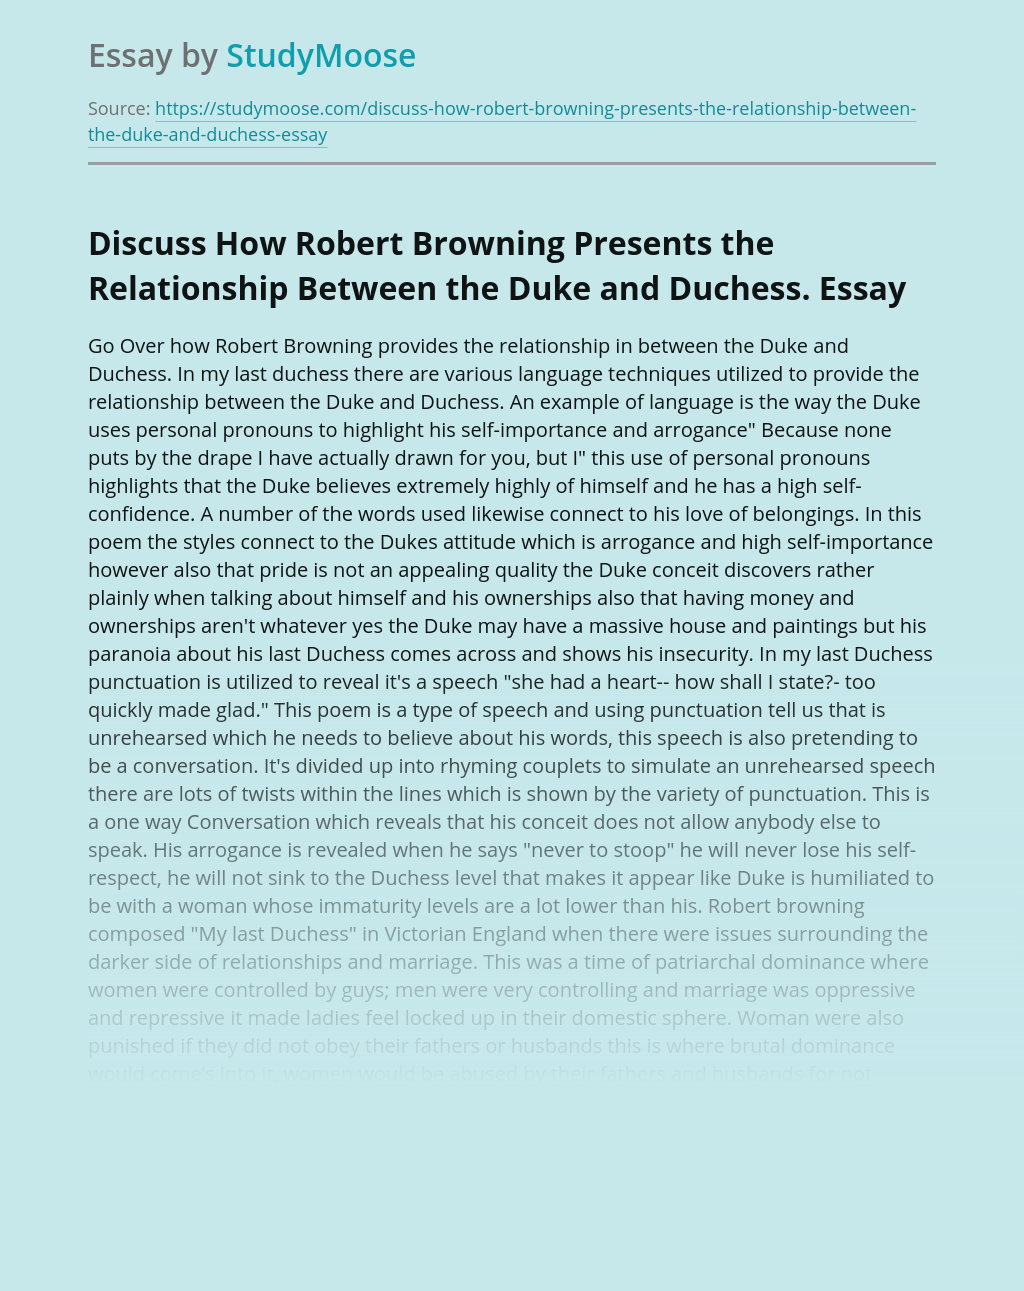 Discuss How Robert Browning Presents the Relationship Between the Duke and Duchess.